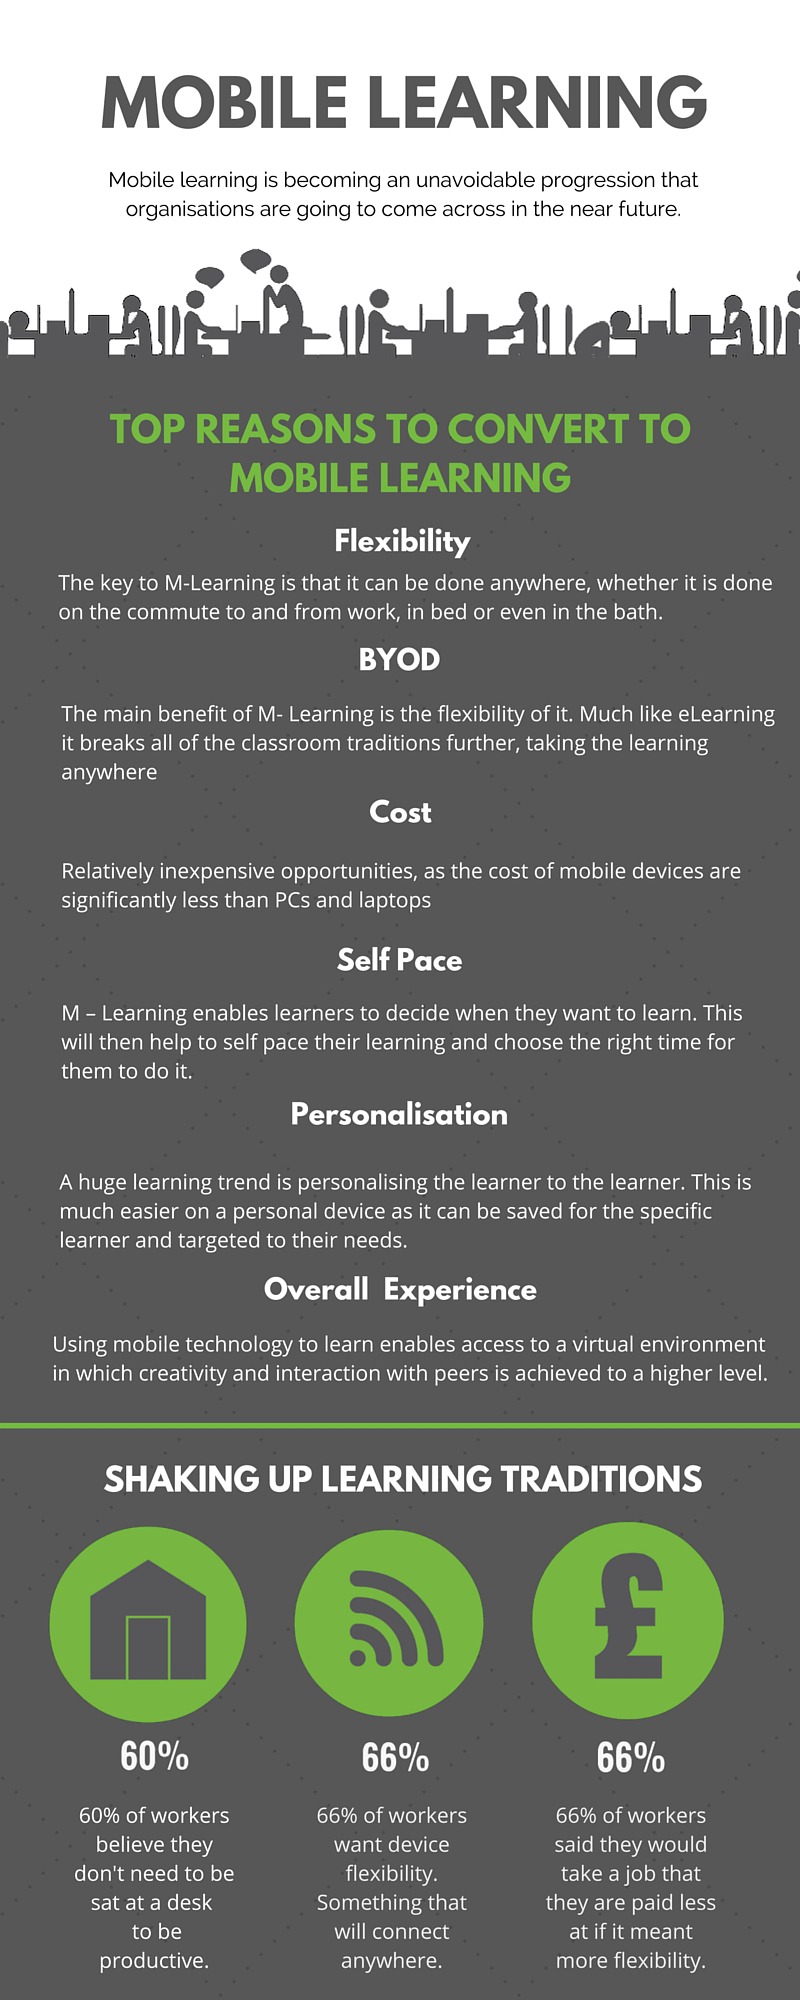 The mLearning Movement Infographic